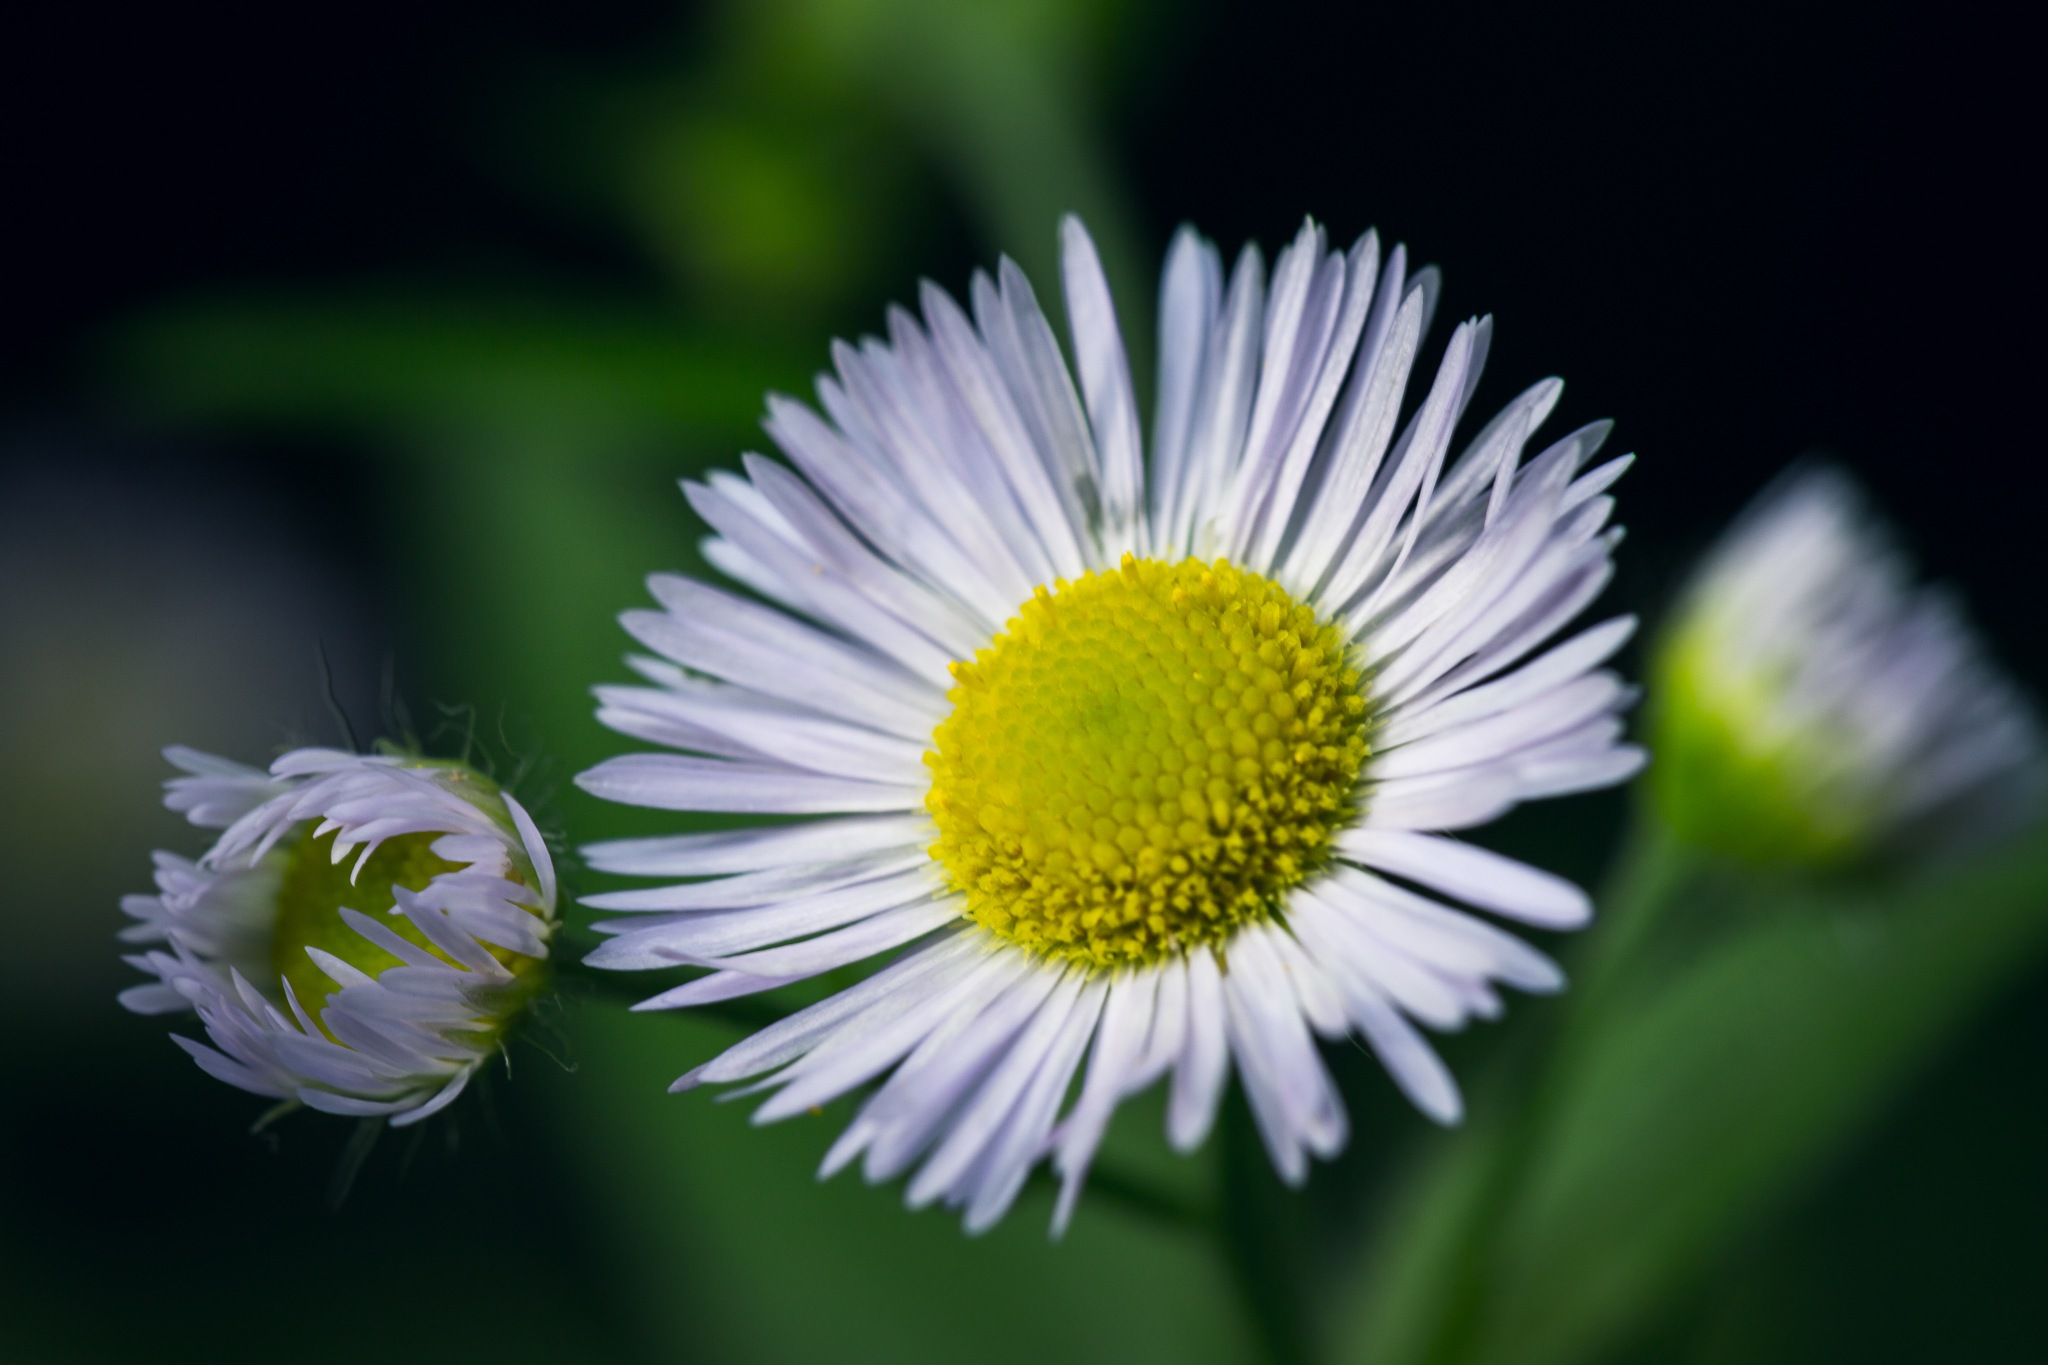 Summer flower by Icethistle Photography